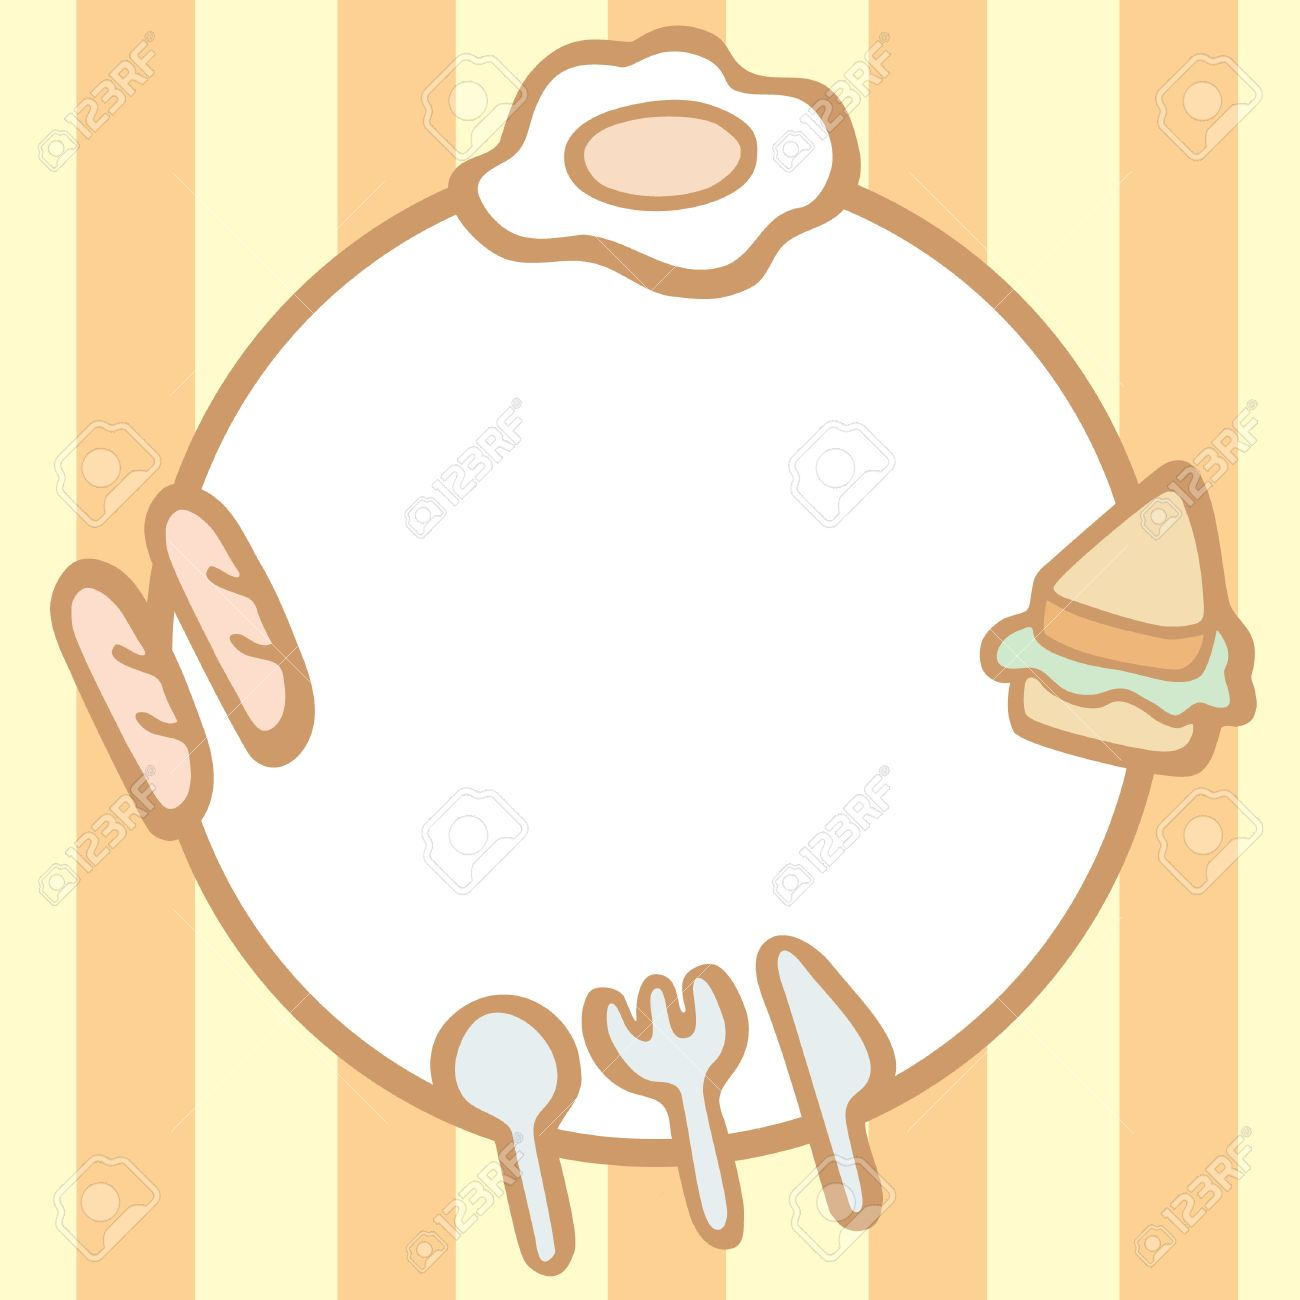 Frame Of Breakfast Background With Space For Your Text, Vector Illustration Stock Vector - 19845068